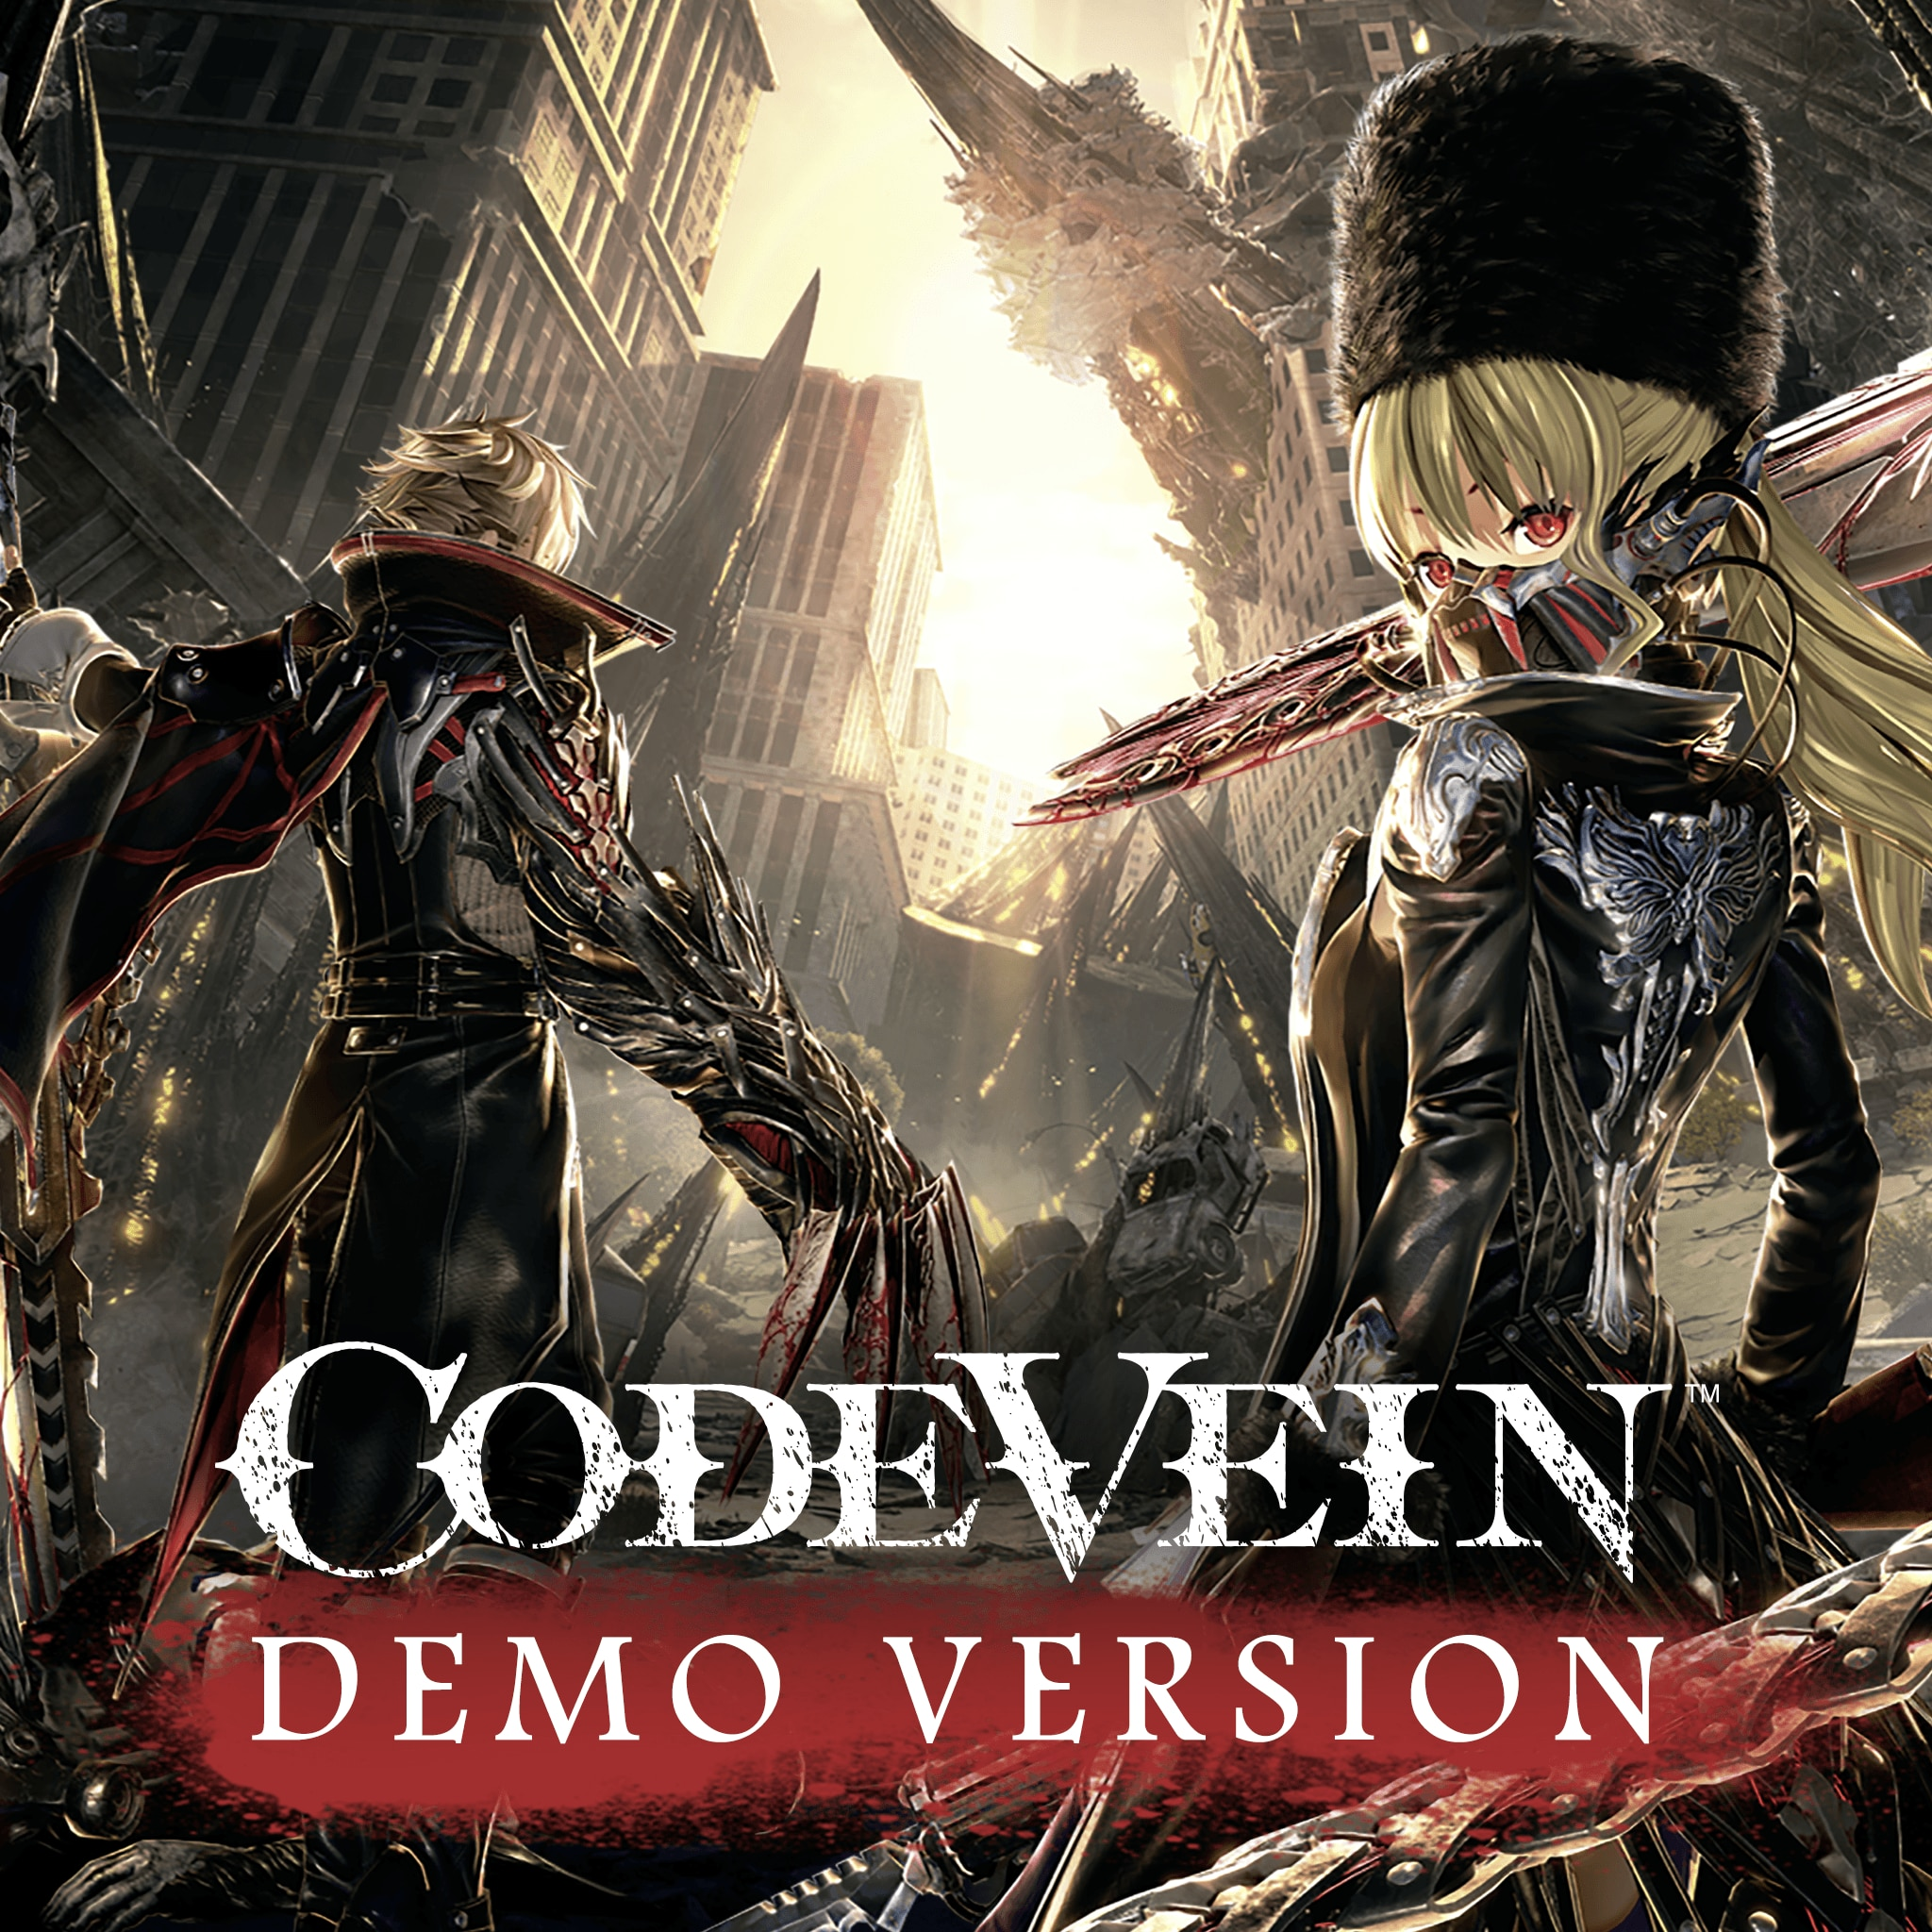 CODE VEIN Demo Version